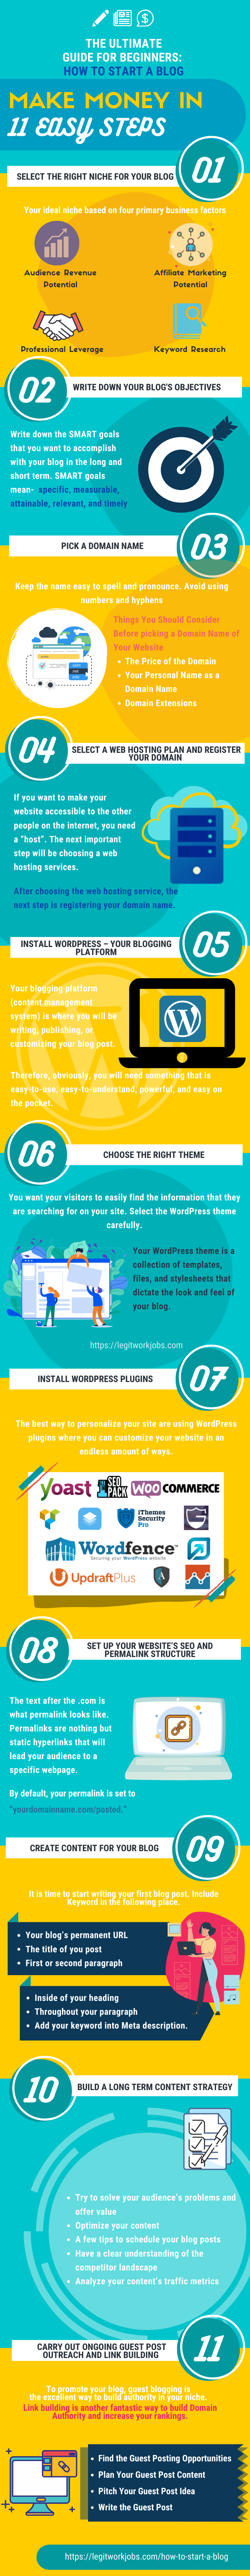 Infographic: How to Start a Blog to Make Money